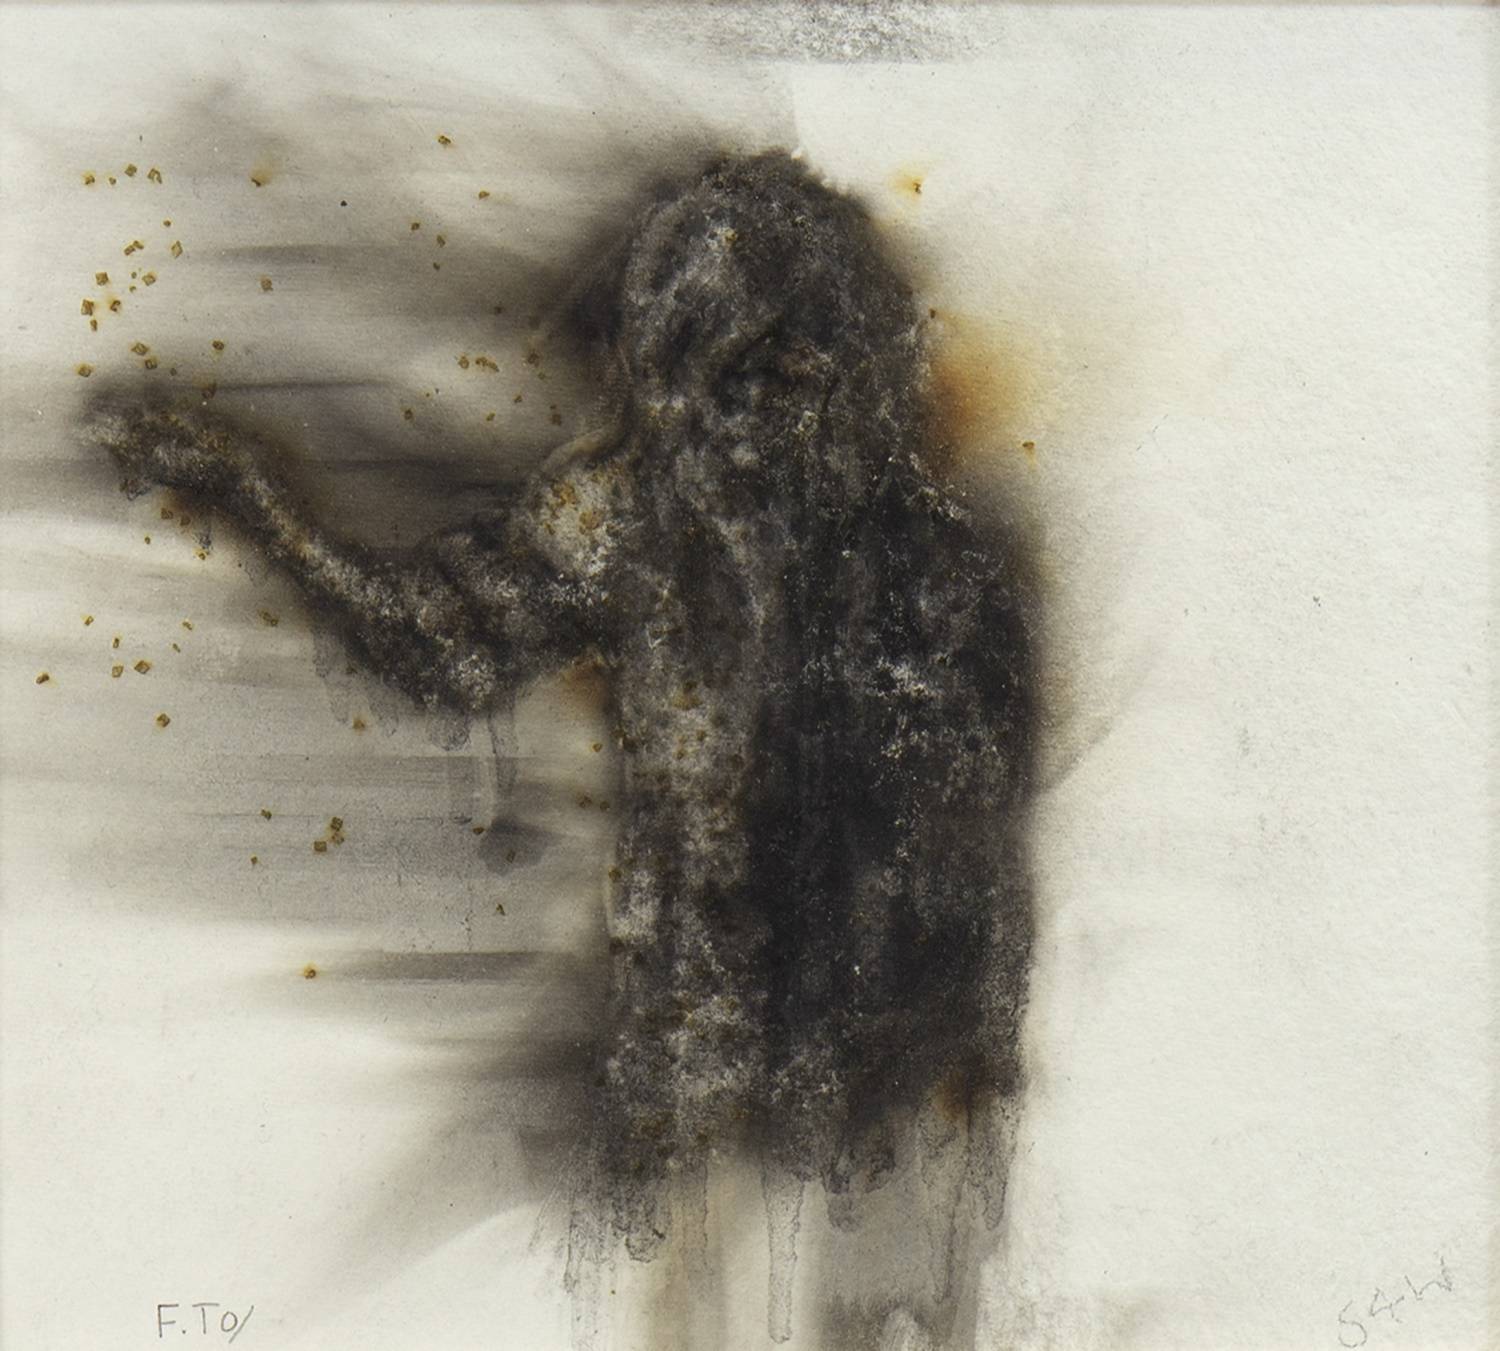 Lot 44 - THE WIZARD, A MIXED MEDIA BY FRANK TO